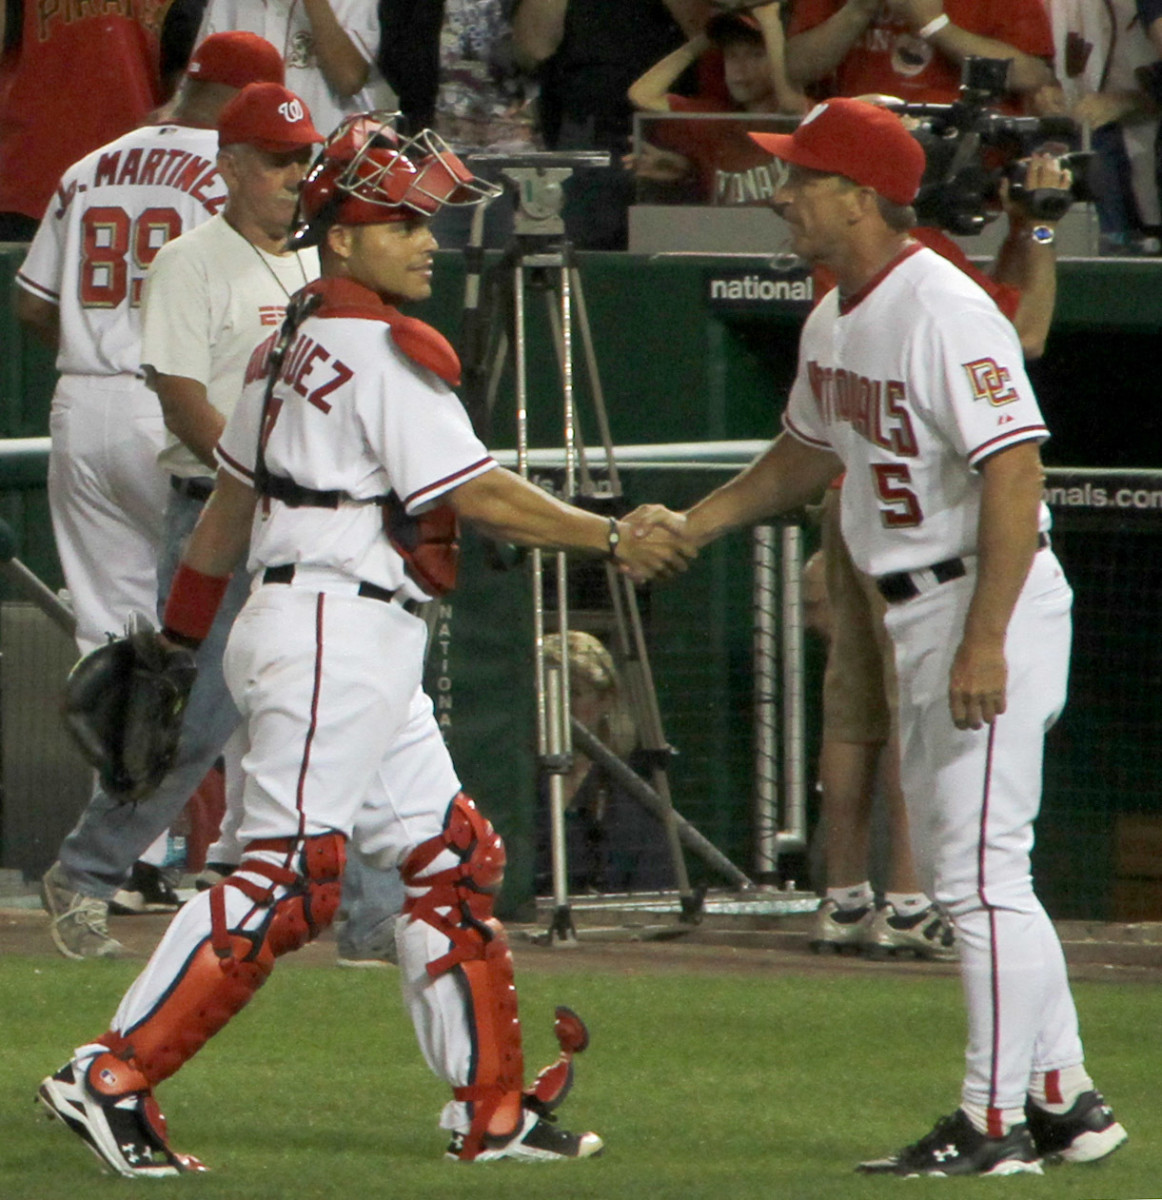 Ivan Rodriguez is most known for his time with the Texas Rangers, but spent his final two seasons with the Washington Nationals.